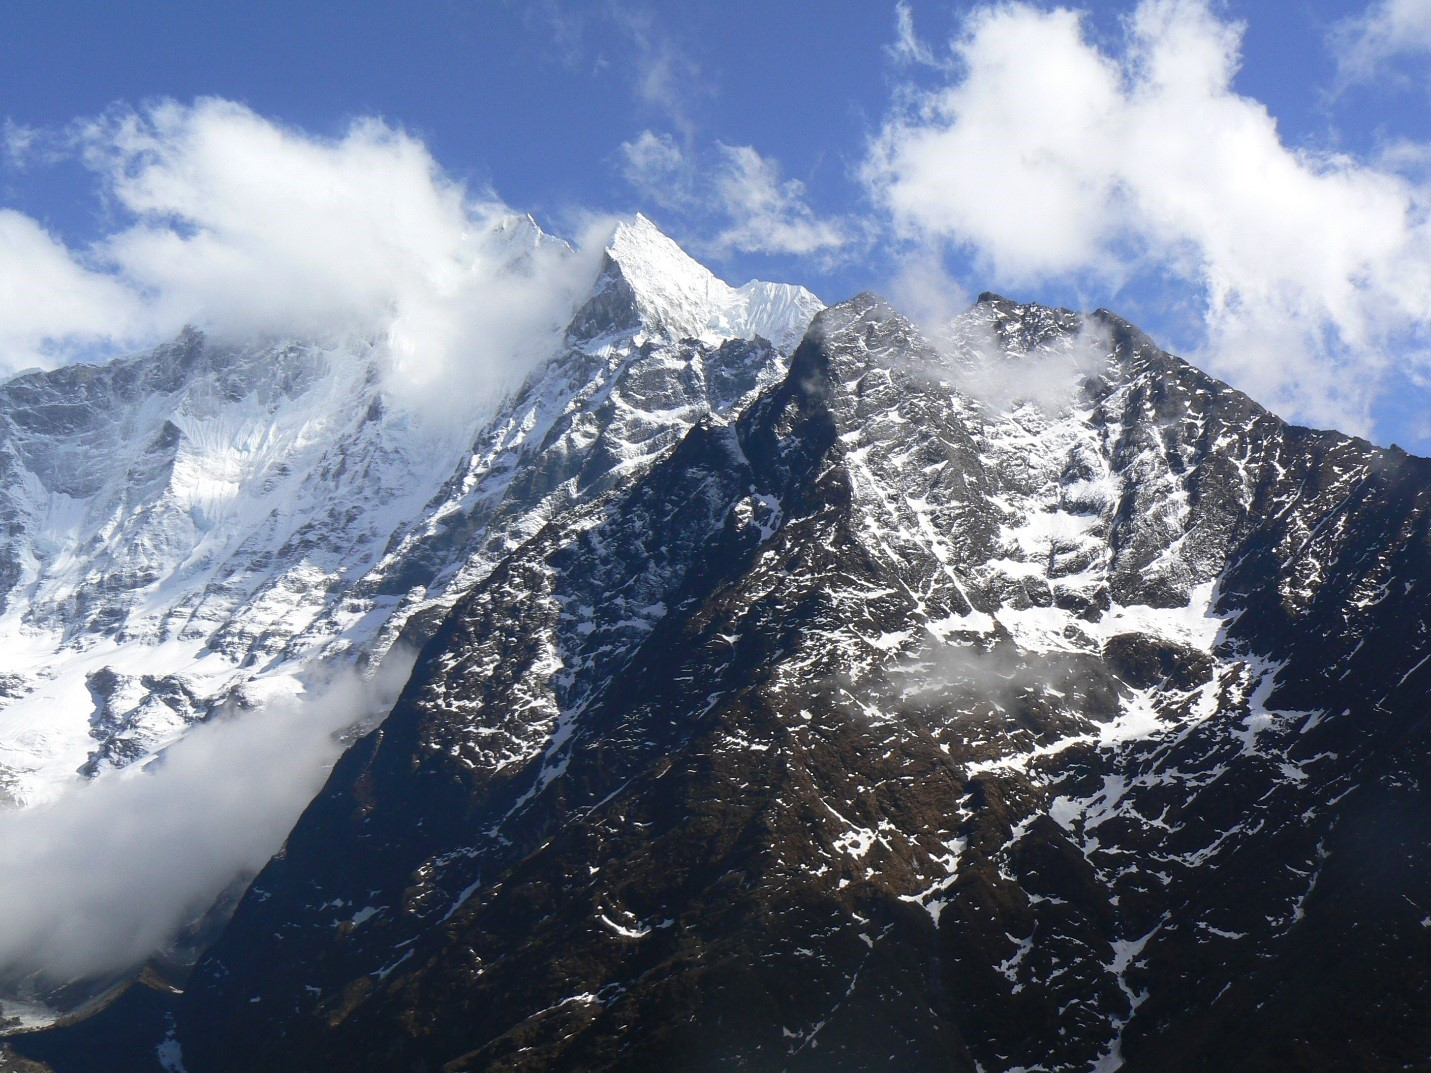 Ice Fall Wallpaper Mount Everest The Ultimate Summit Charity Challenge Blog